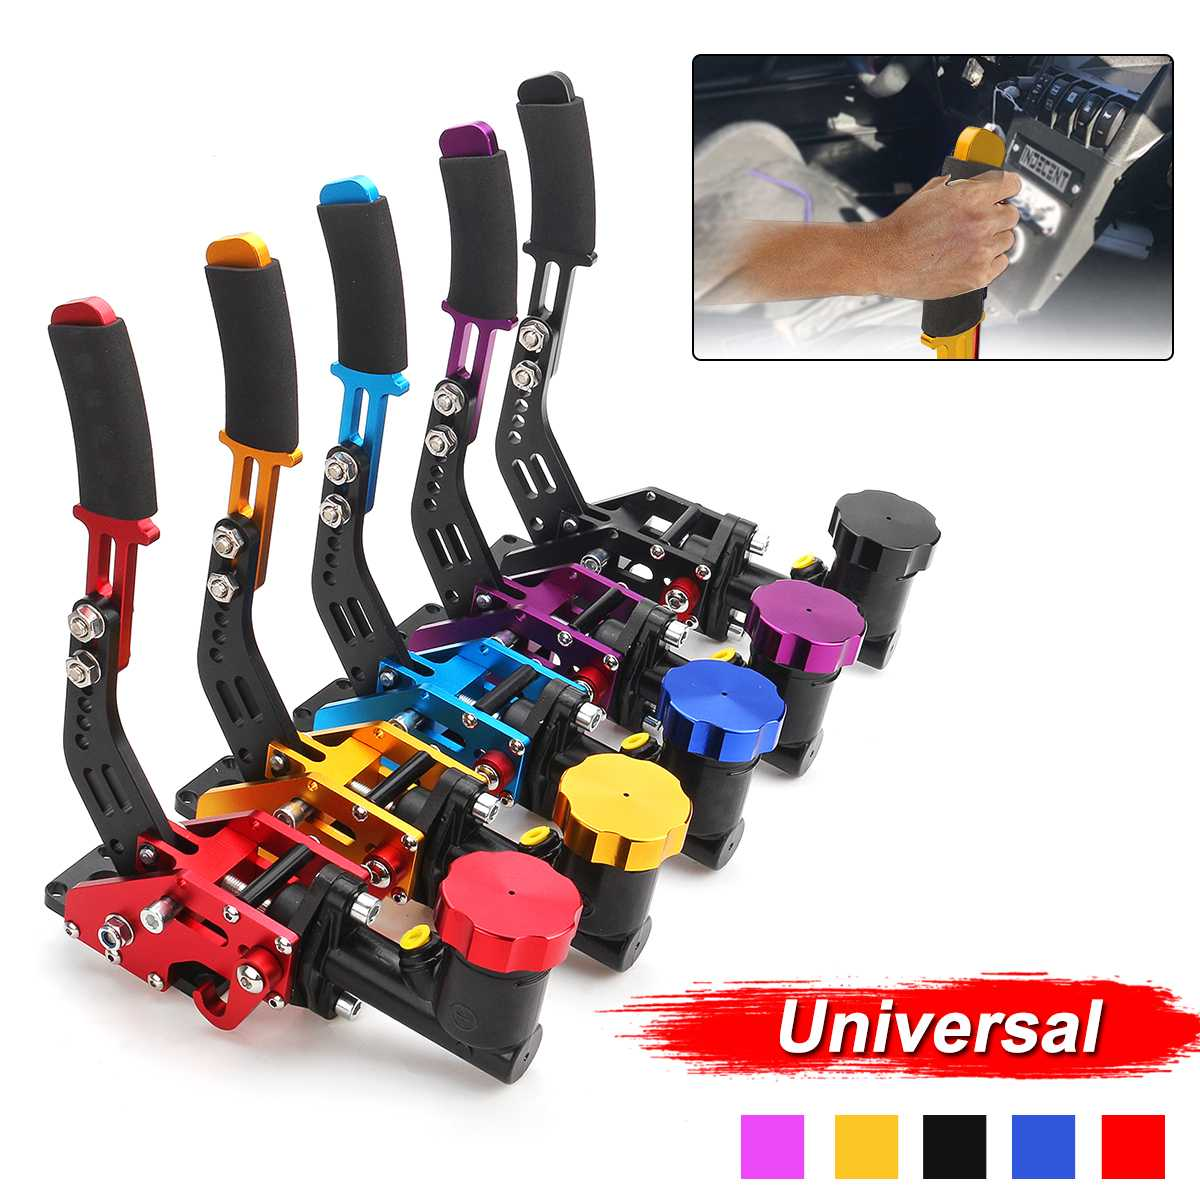 Lever Handbrake-Gear Drift Racing-Car-Hydraulic-E-Brake Blue/gold with Oil-Tank Universal title=